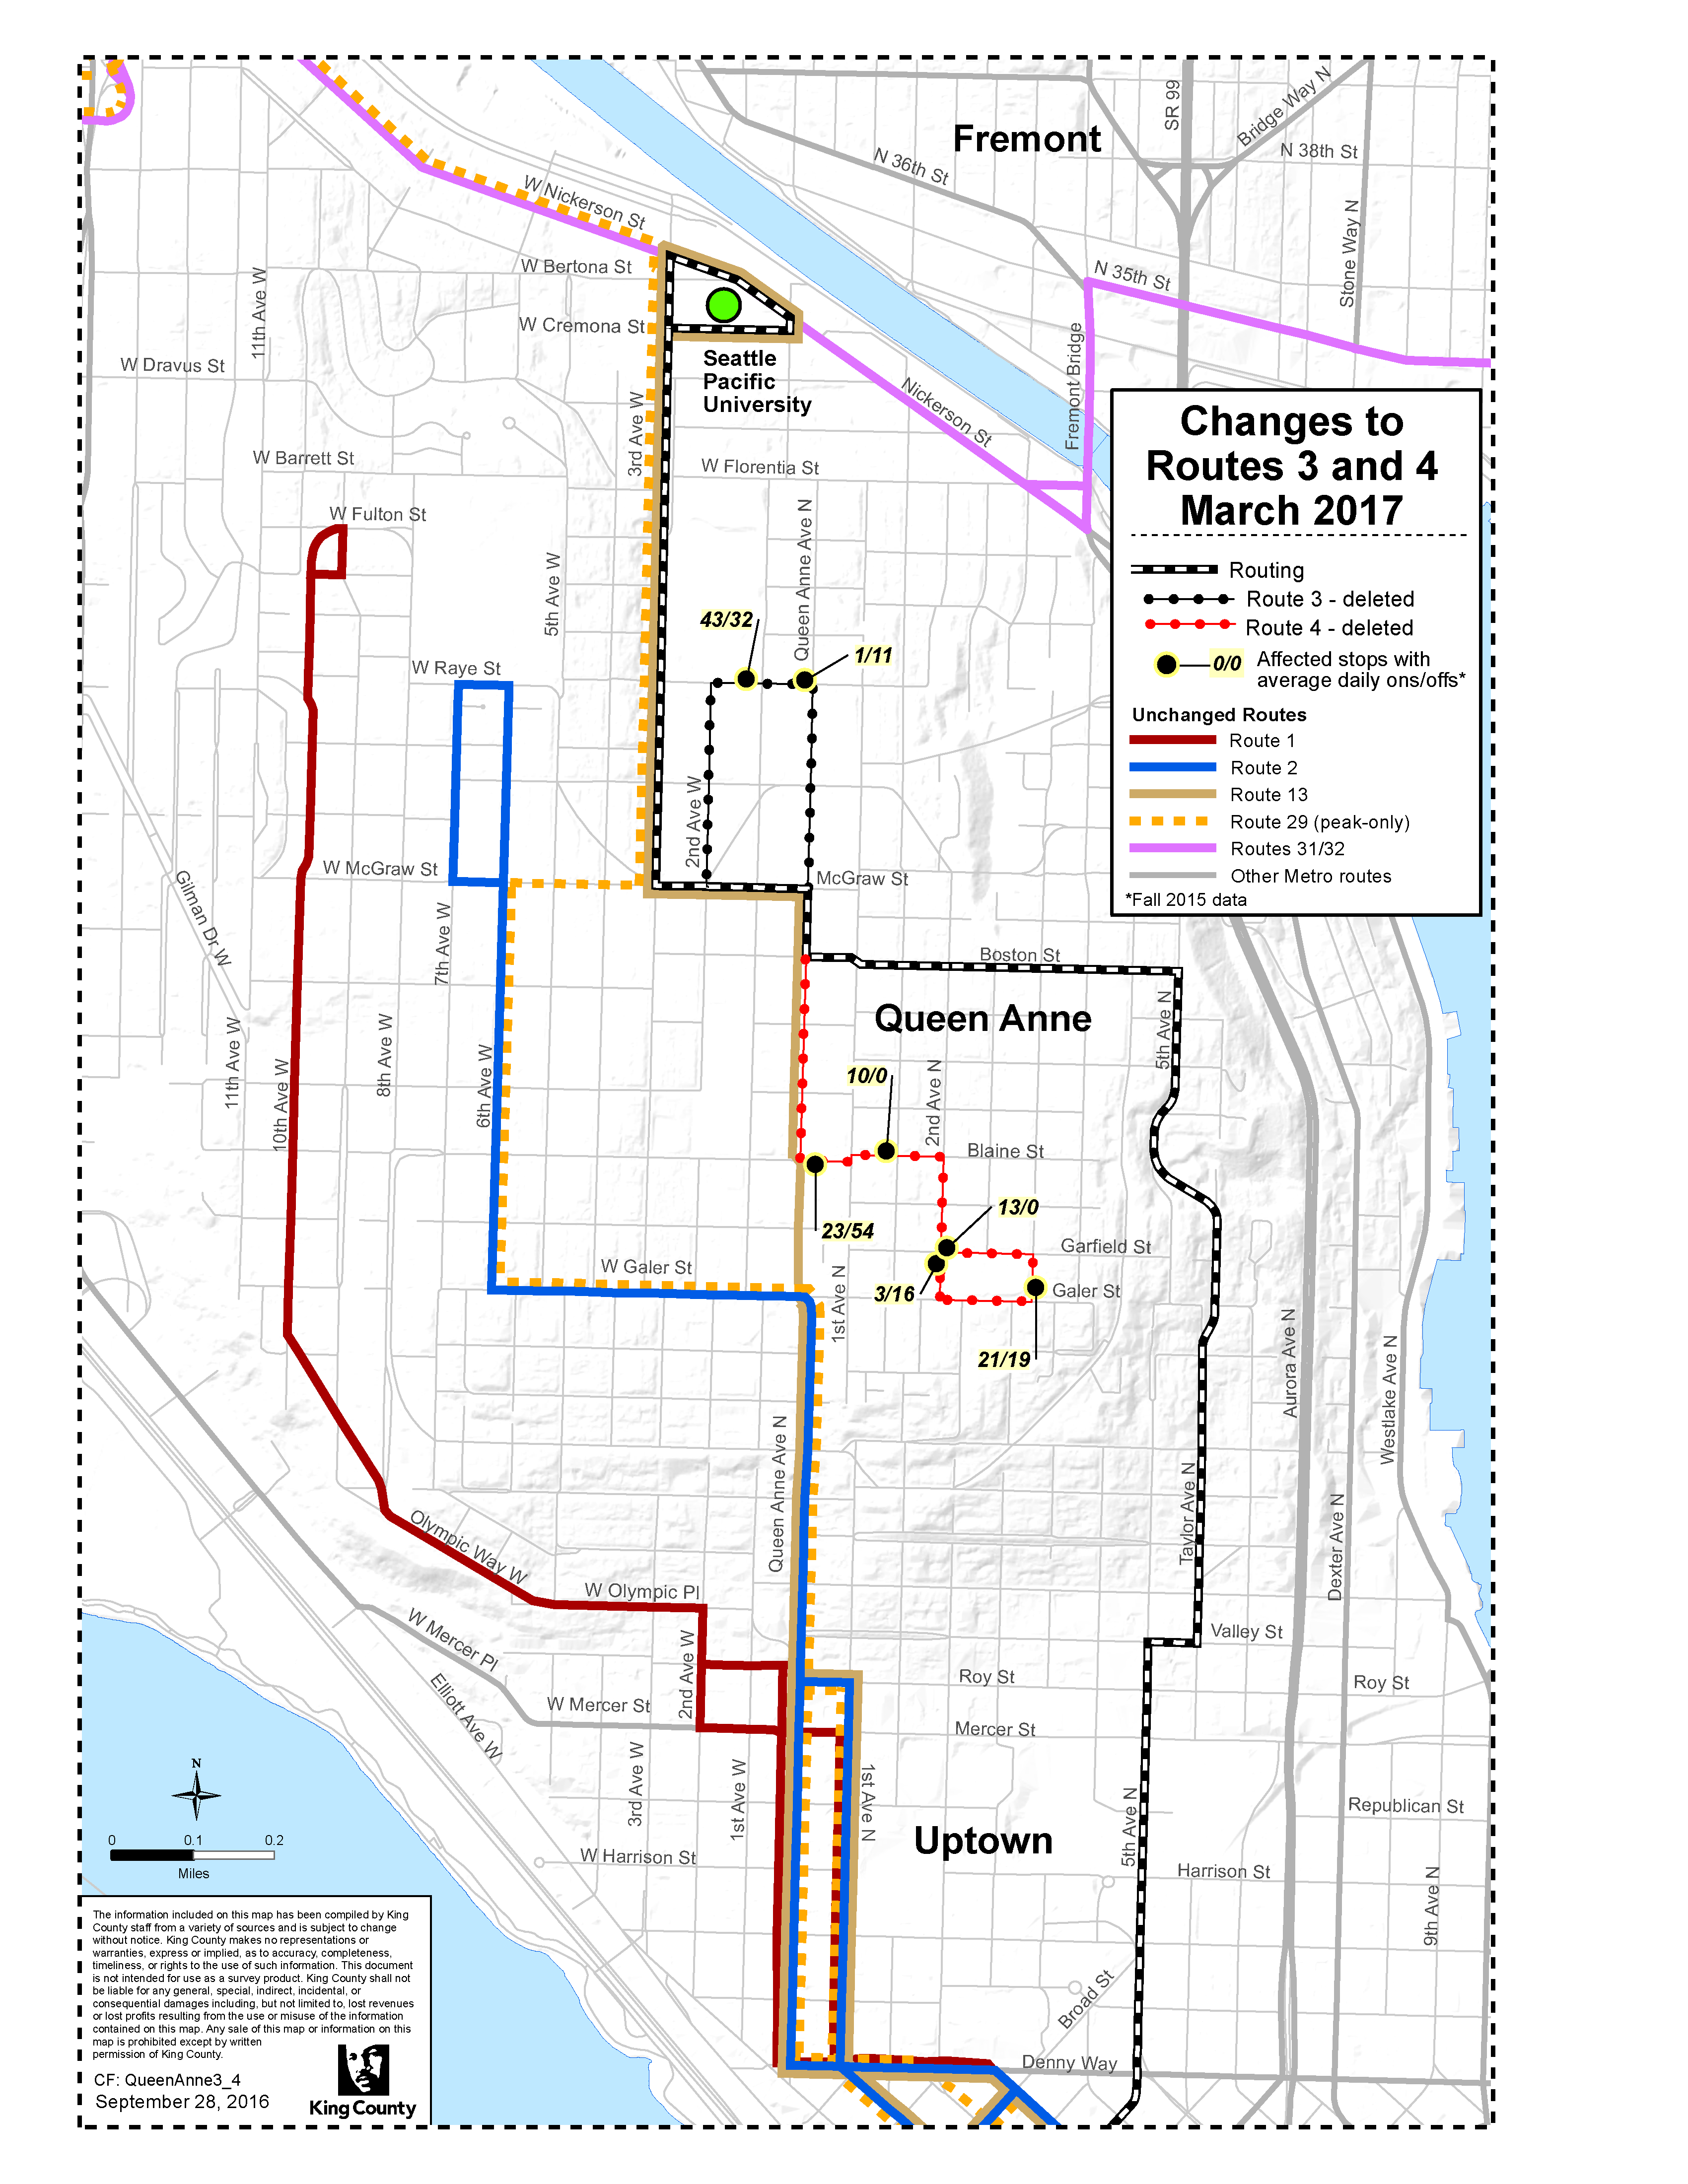 Metro to extend routes 3 and 4 to serve Seattle Pacific